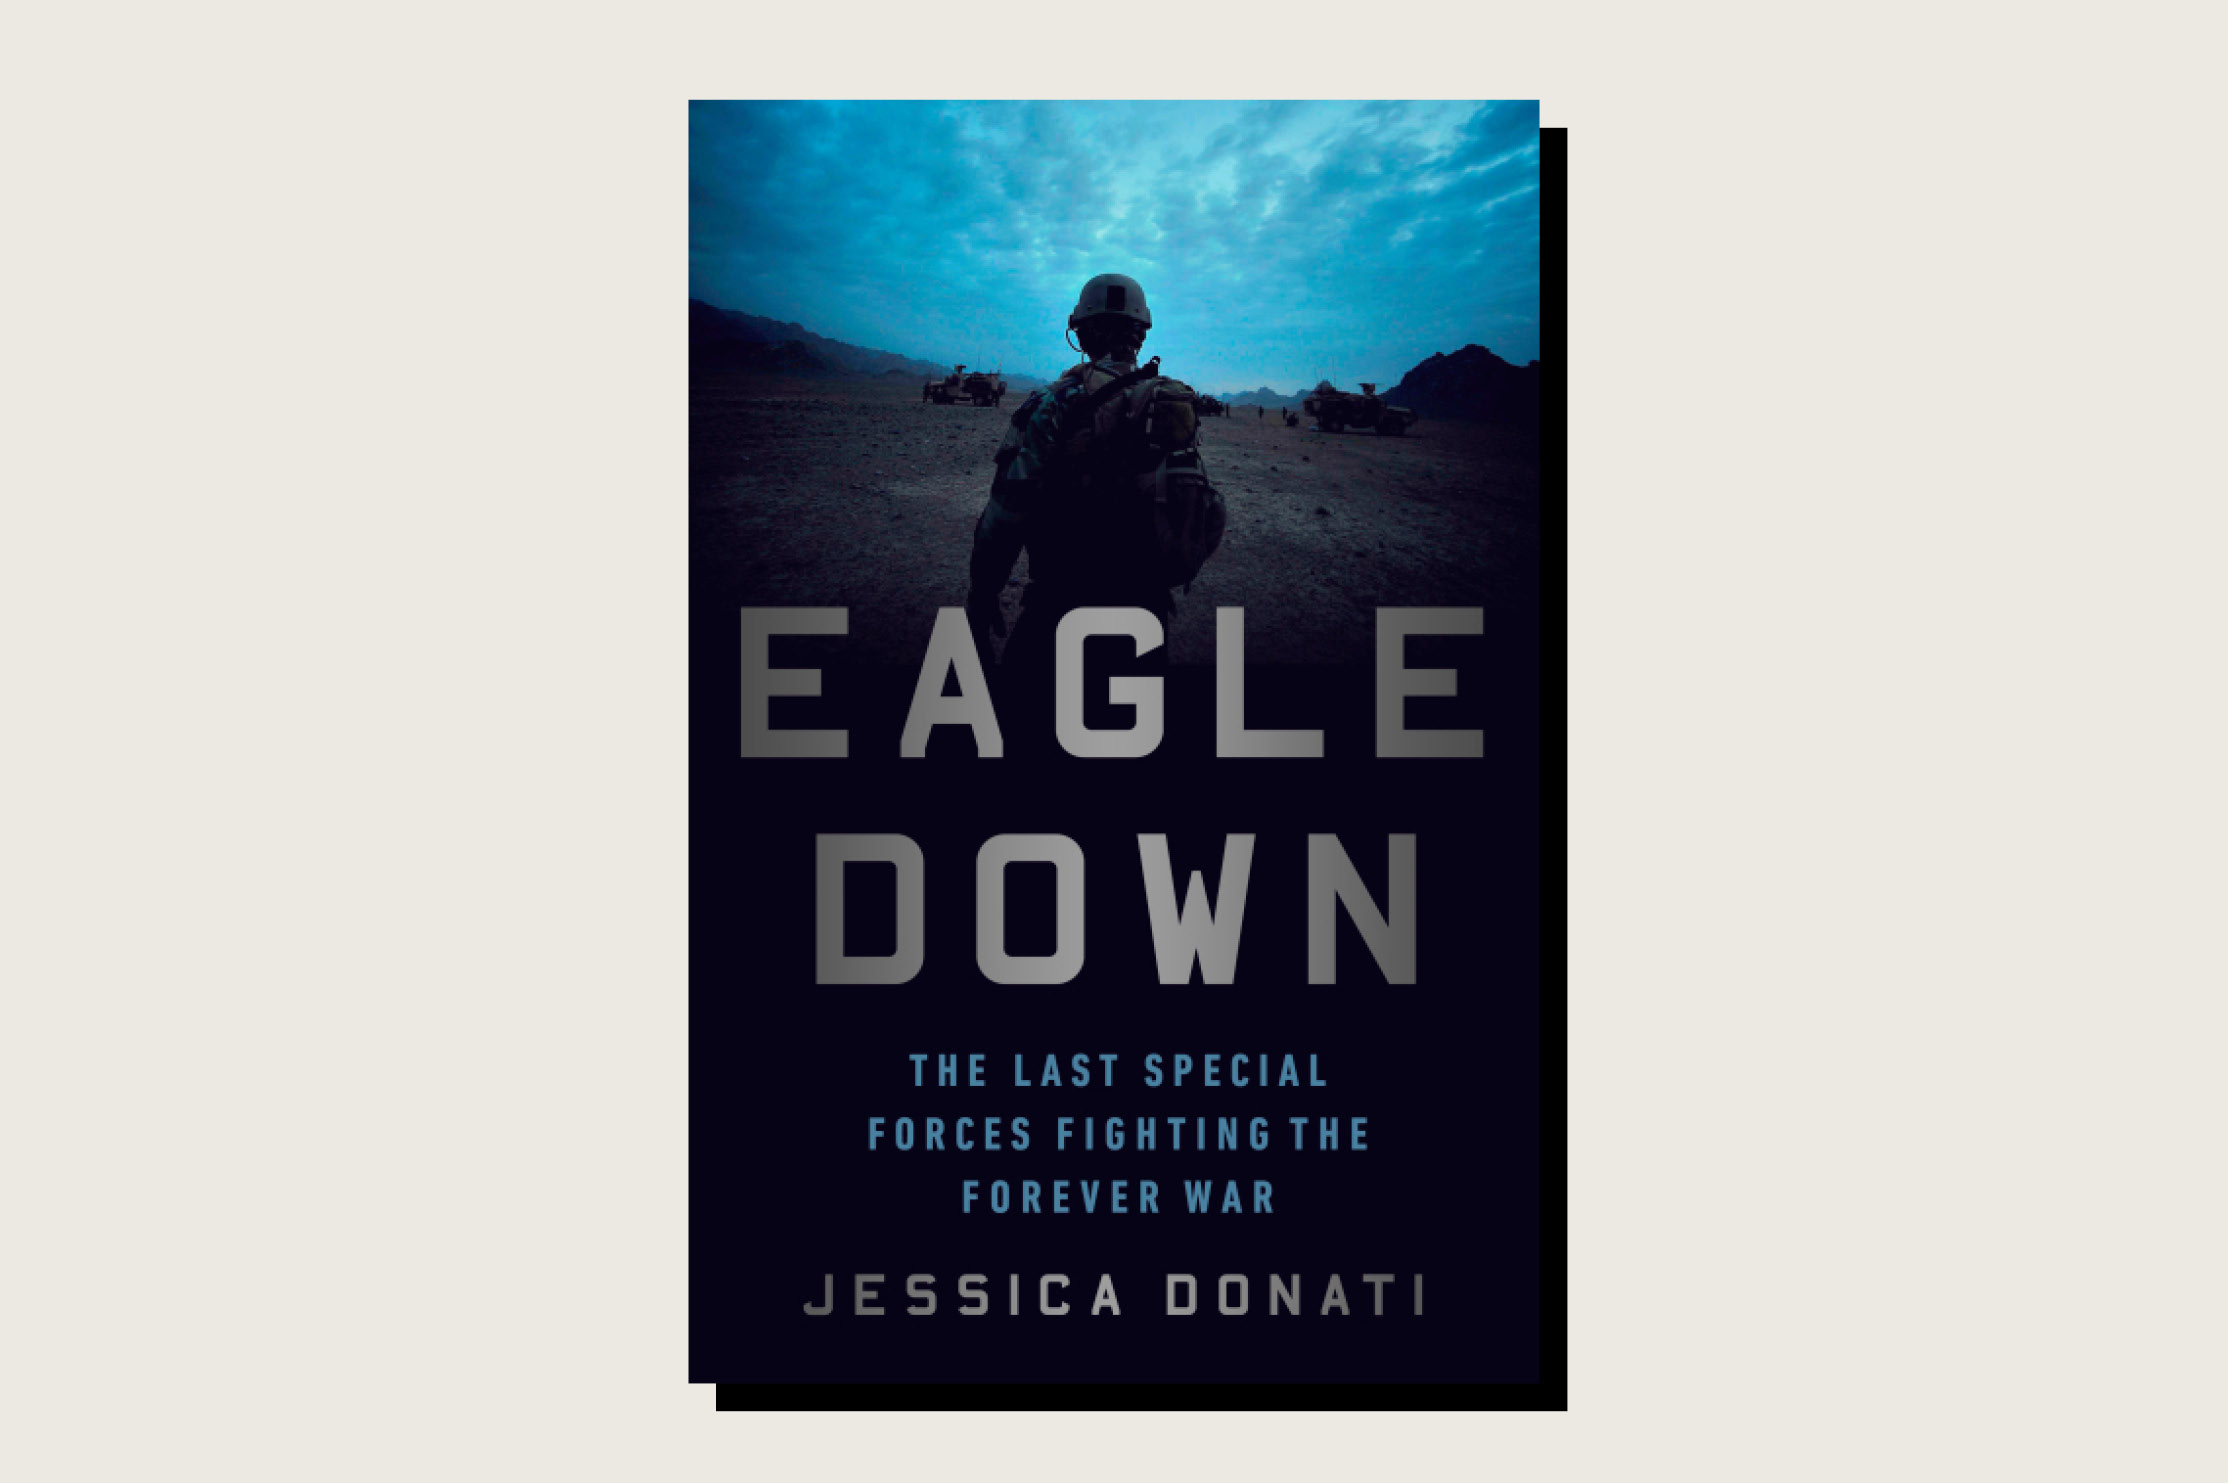 <em>Eagle Down: The Last Special Forces Fighting the Forever War</em>, Jessica Donati, PublicAffairs, 321 pp., .99, January 2021